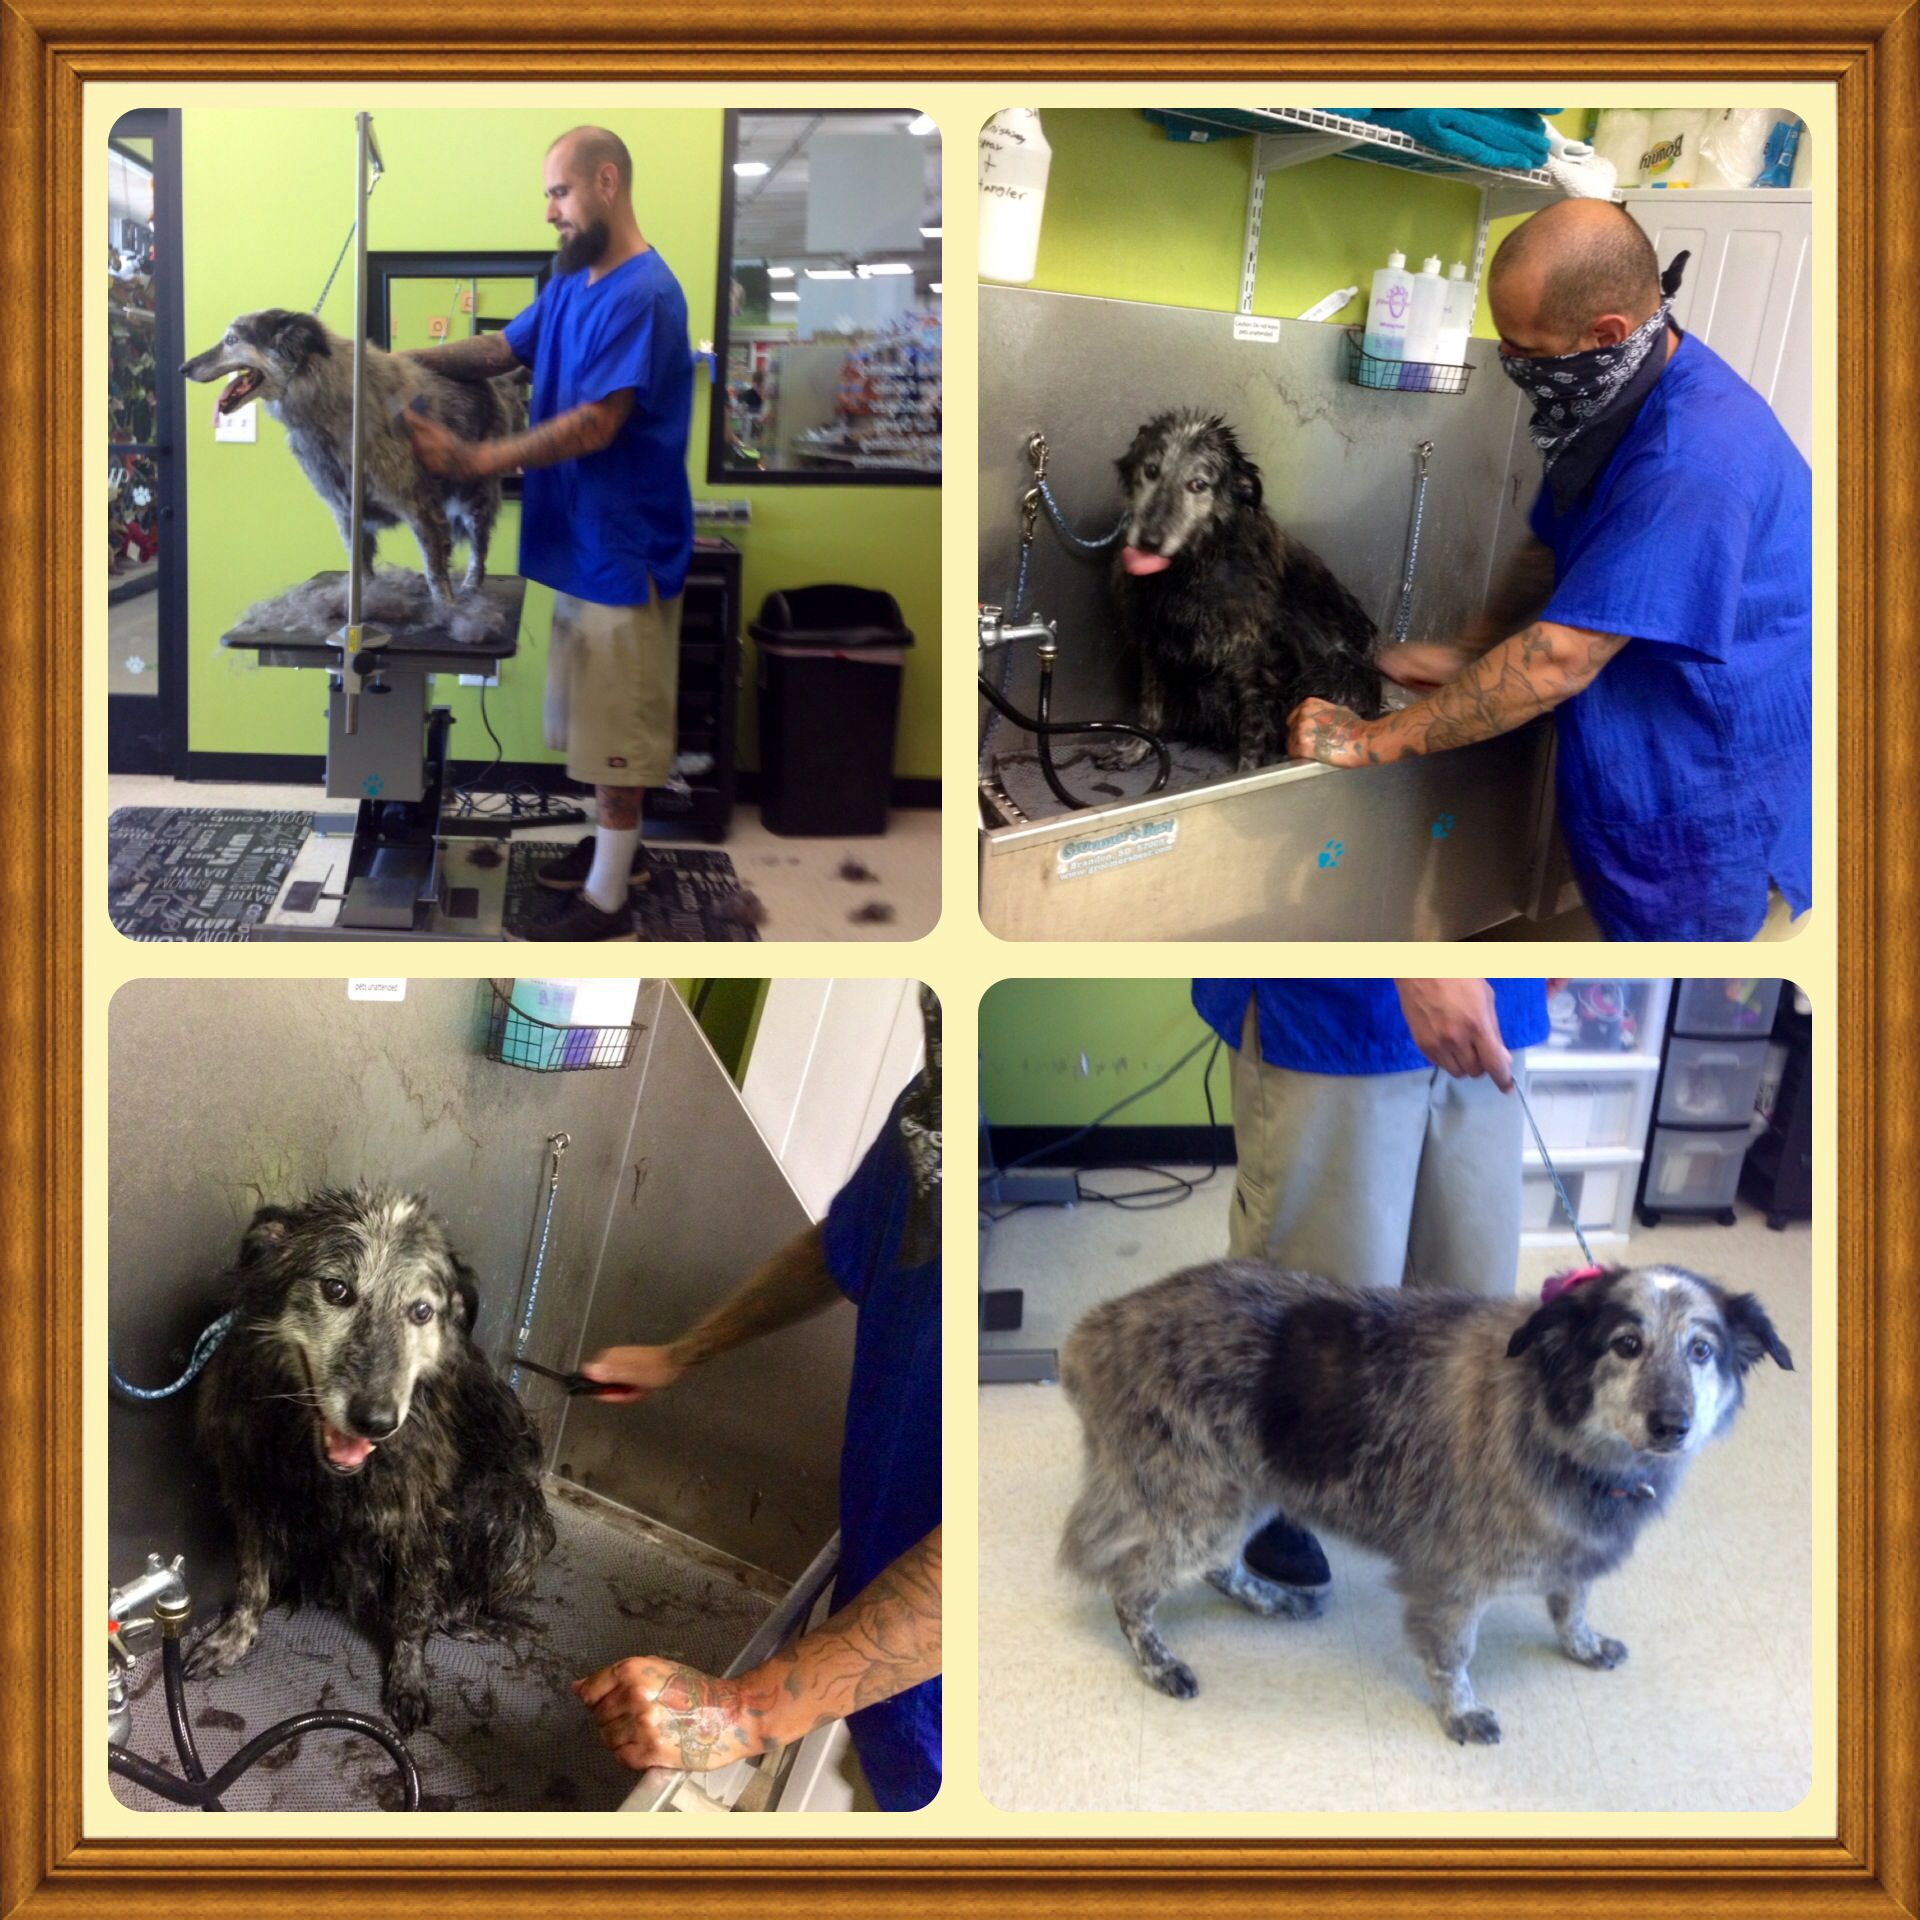 The Pet Club Grooming Salon 17204 N 67th Ave Glendale Arizona 85306 623 979 7205 Grooming Salon Pets Glendale Arizona